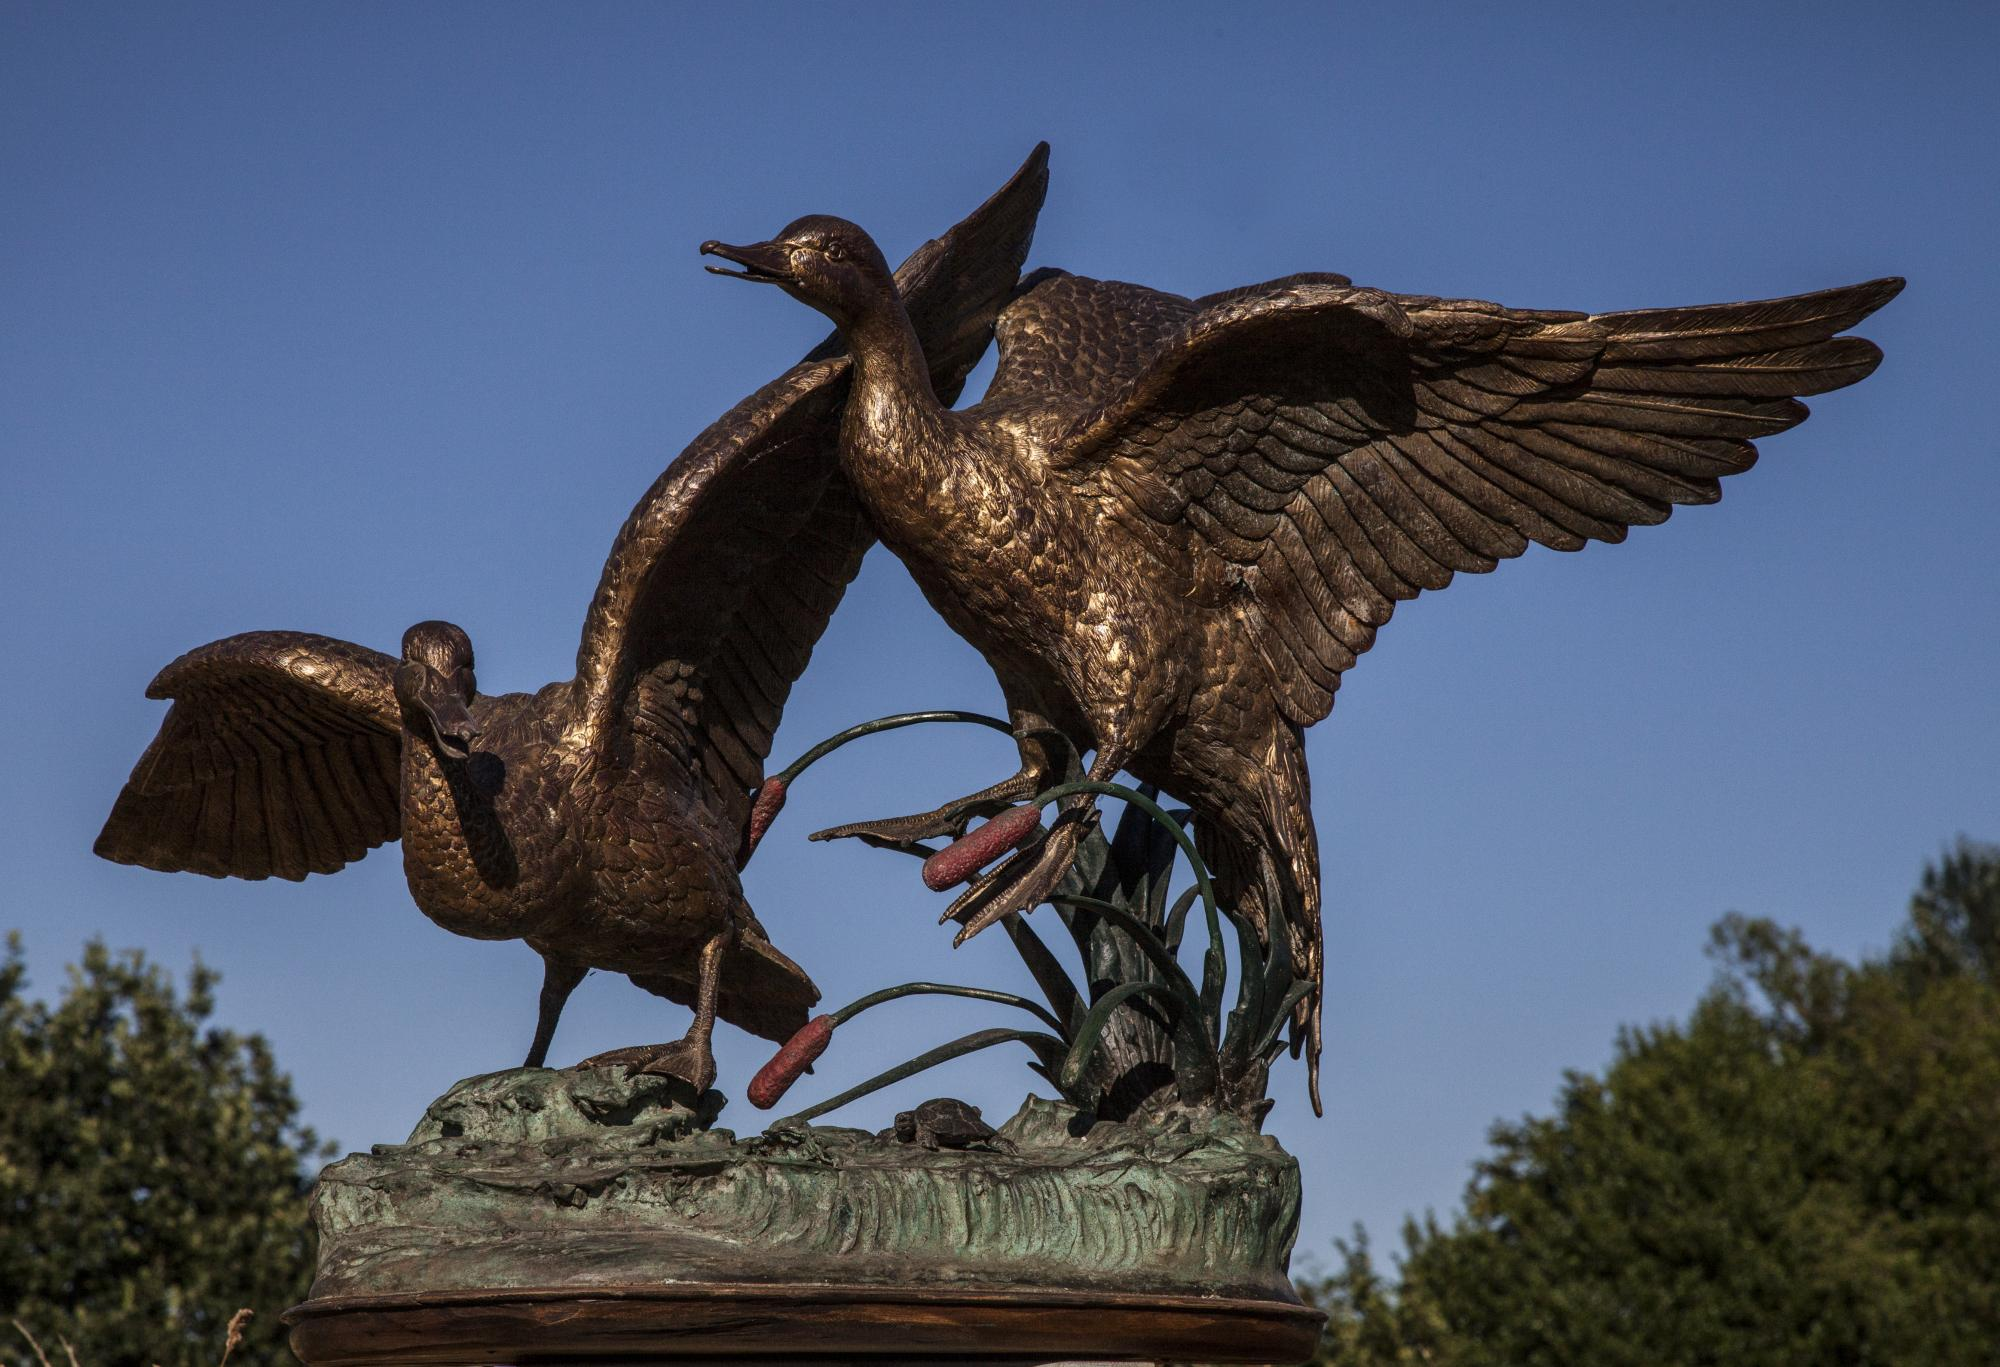 Lot 29 - Sculpture: Ducks in Bullrushes, Bronze, 89cm high by 123cm wide by 105cm deep